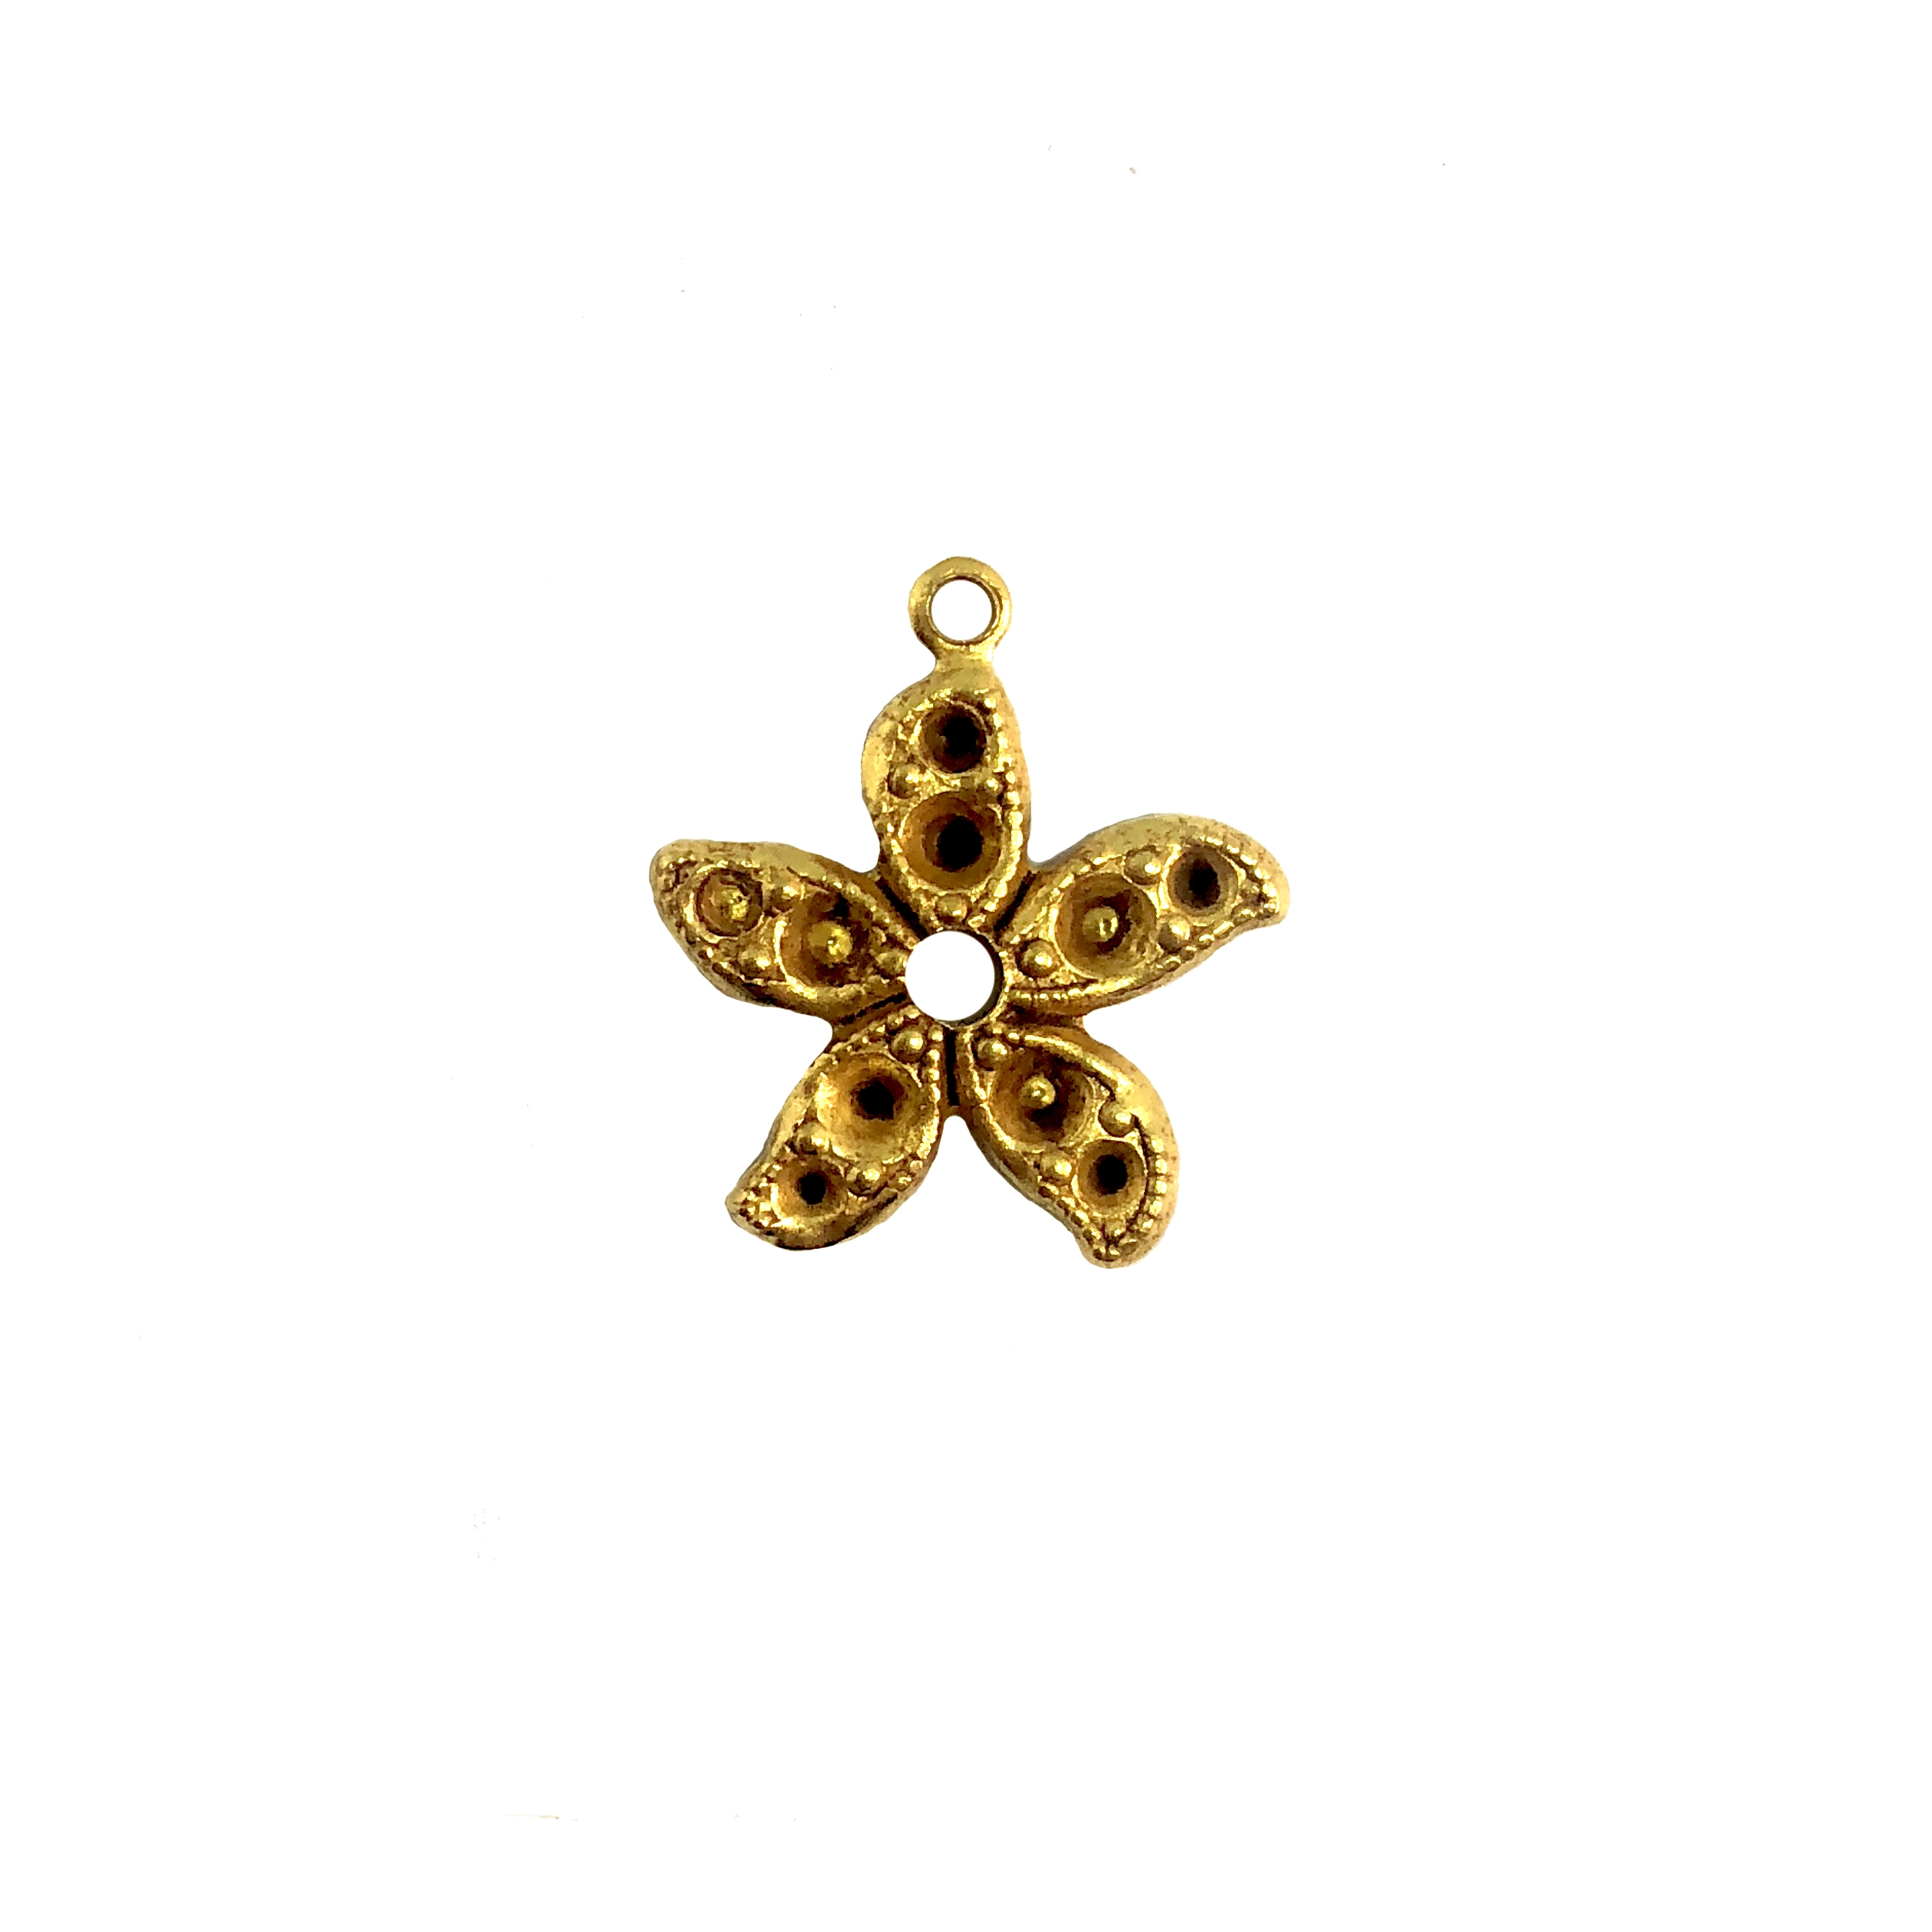 Brass starfish or flower, classic gold, charm, earring drop, Brass Stamping, Us Made. Nickel Free, B'sue Boutiques, Jewelry Supplies, Jewelry Parts, Jewelry Making, 08496, jewelry findings, charms, beach, ocean, sea life, flower